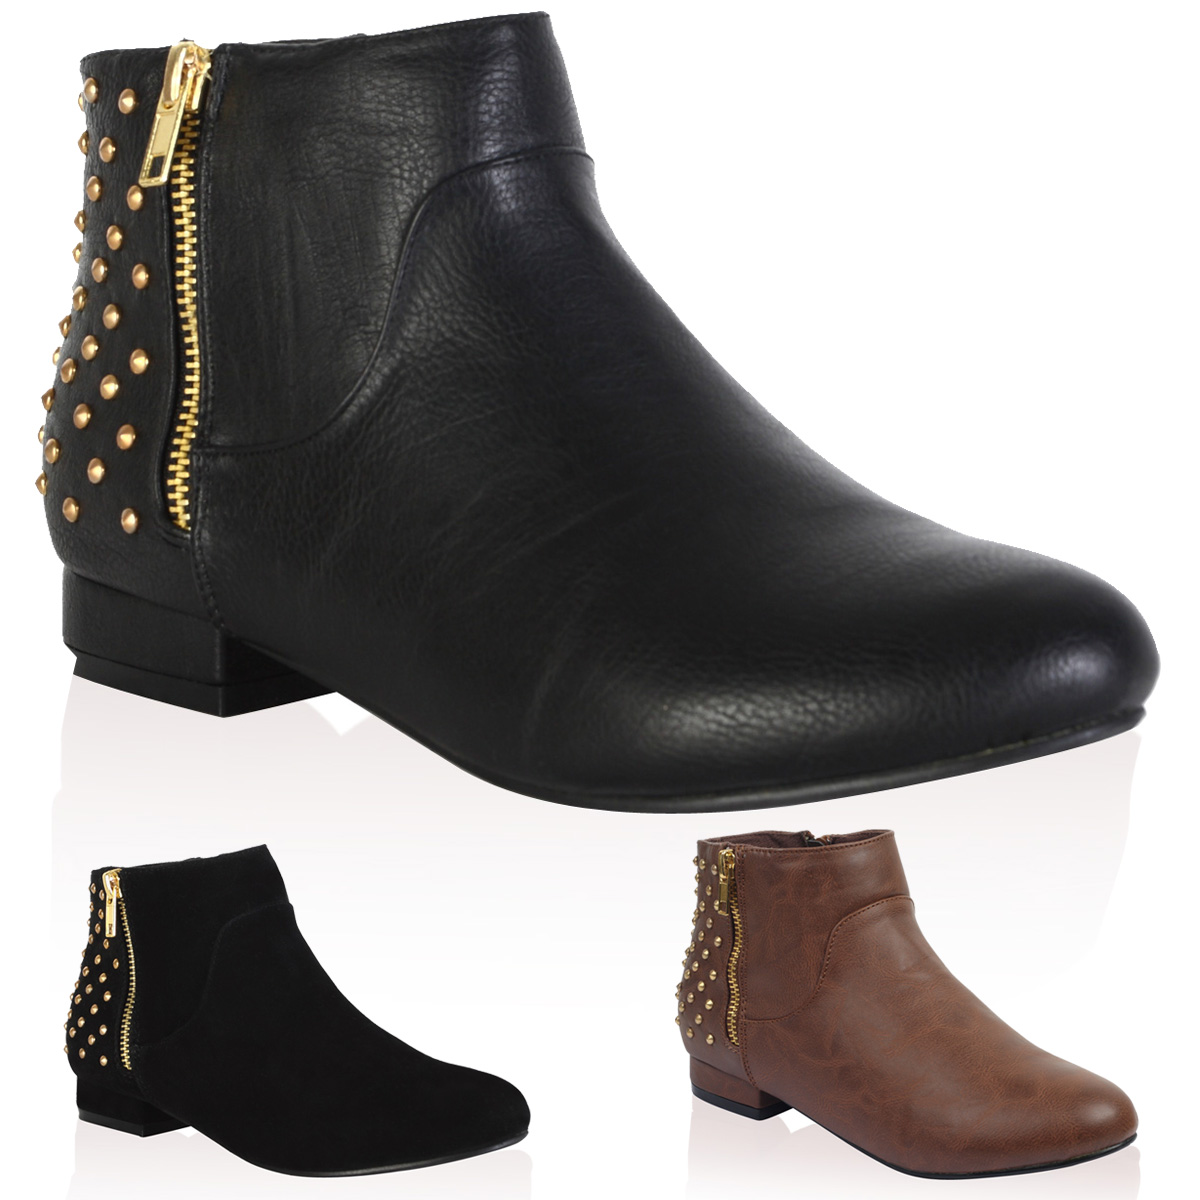 97p bottine femme chelsea cloutee avec fermeture eclair chaussures taille 36 41 ebay. Black Bedroom Furniture Sets. Home Design Ideas